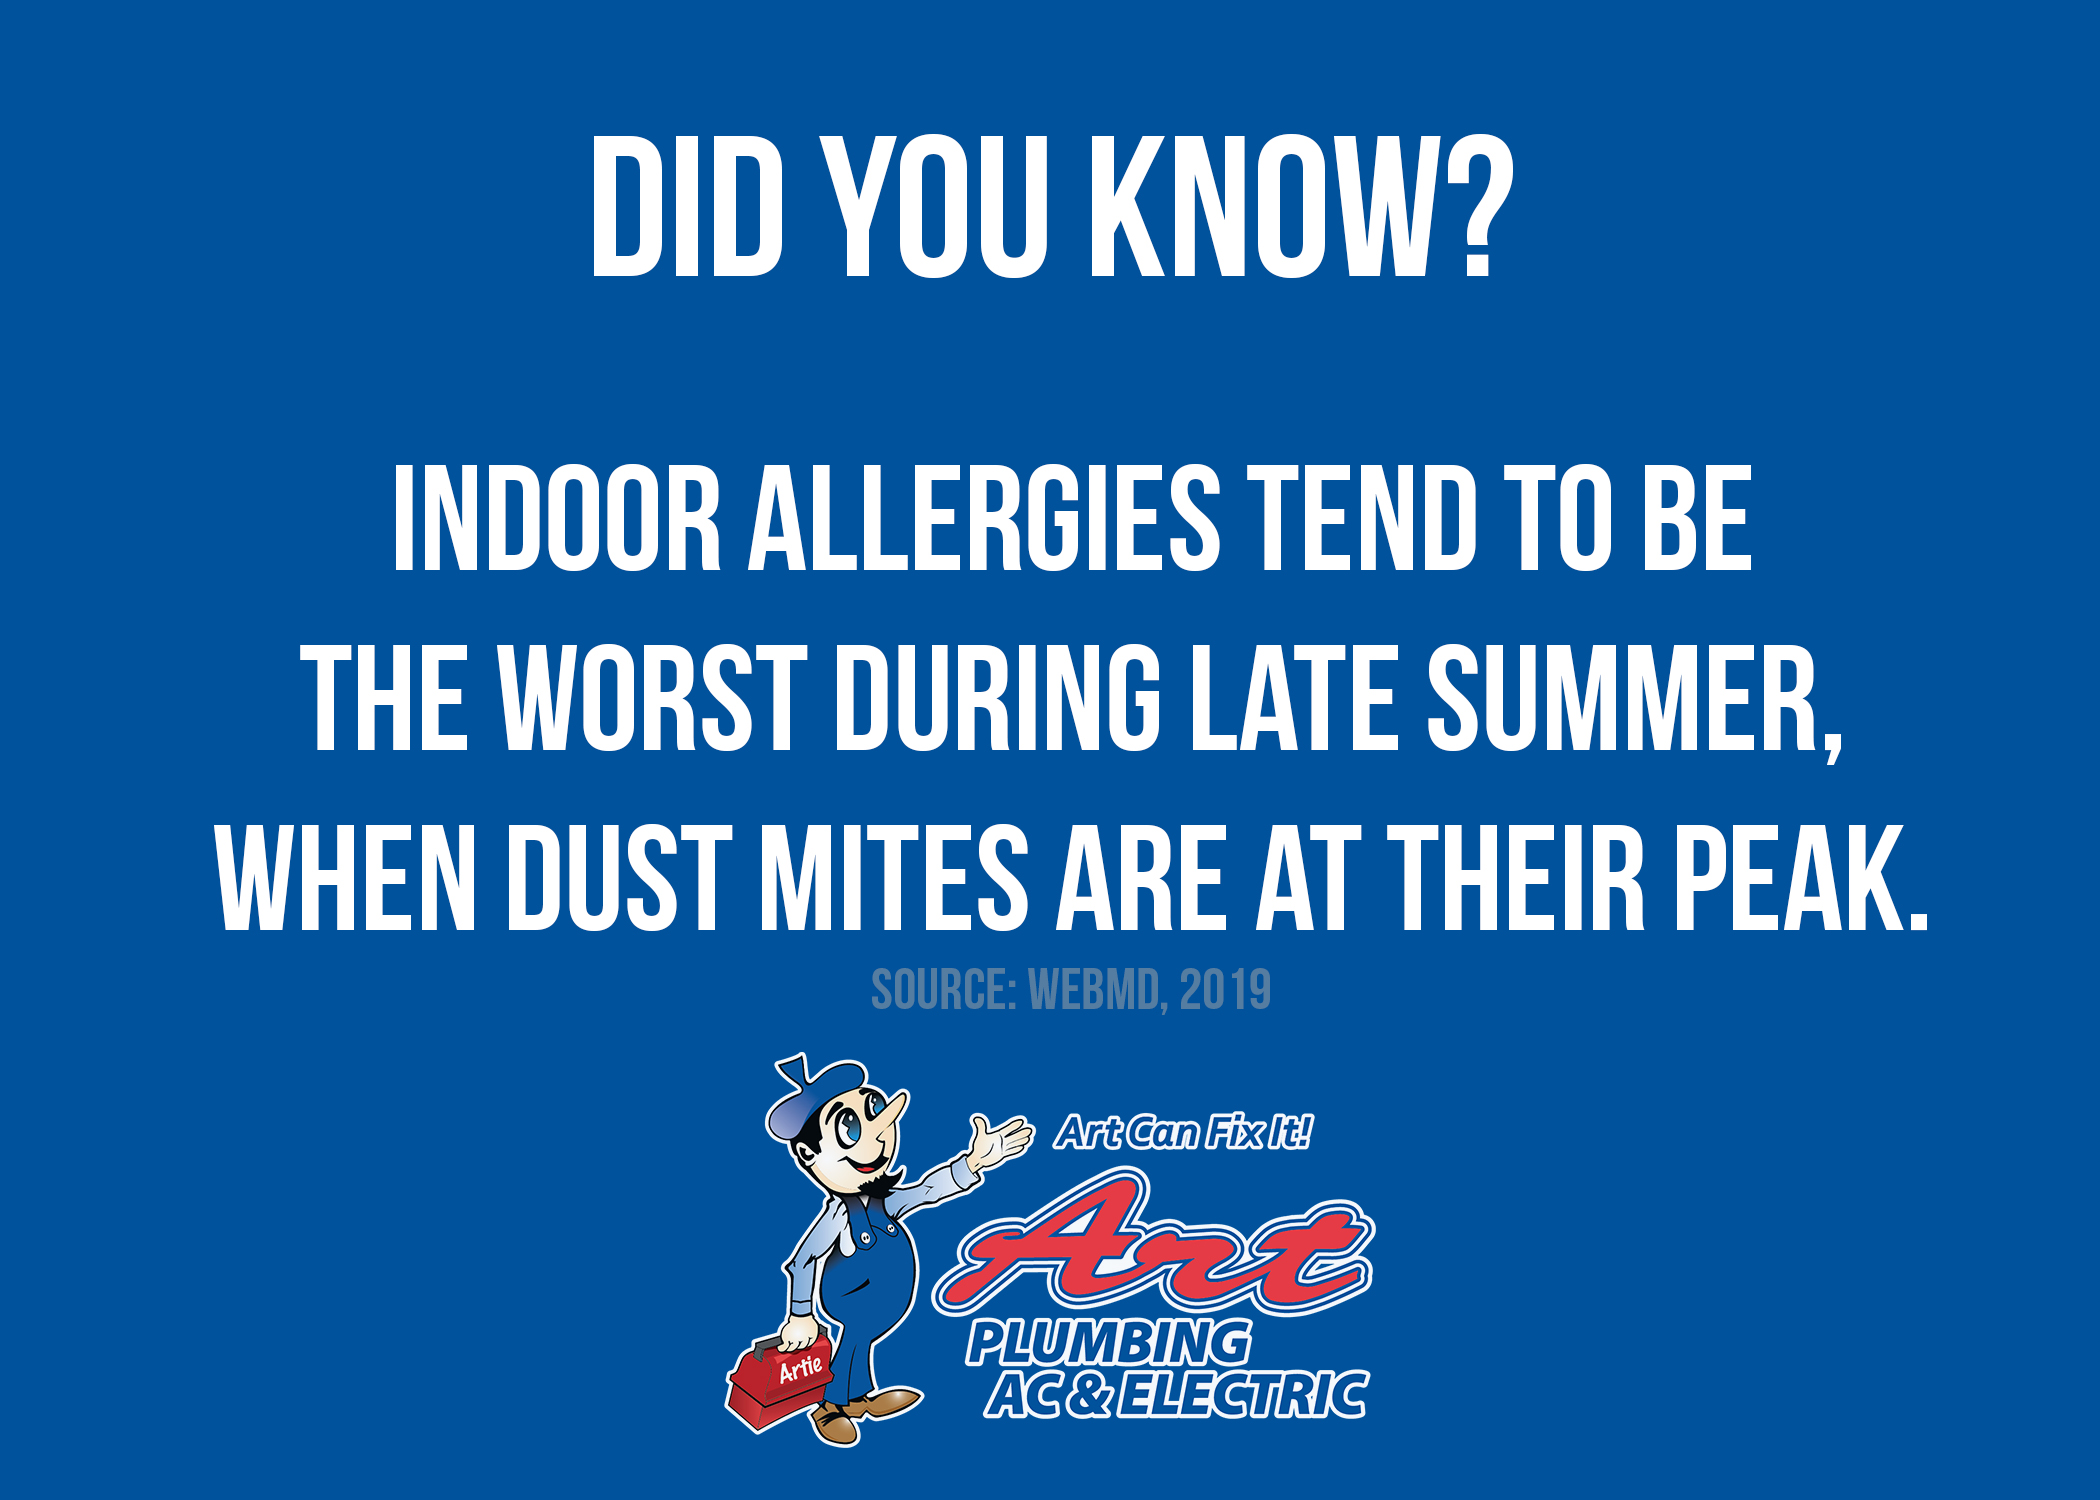 Did You Know Indoor Allergies Are Worst During Summer?